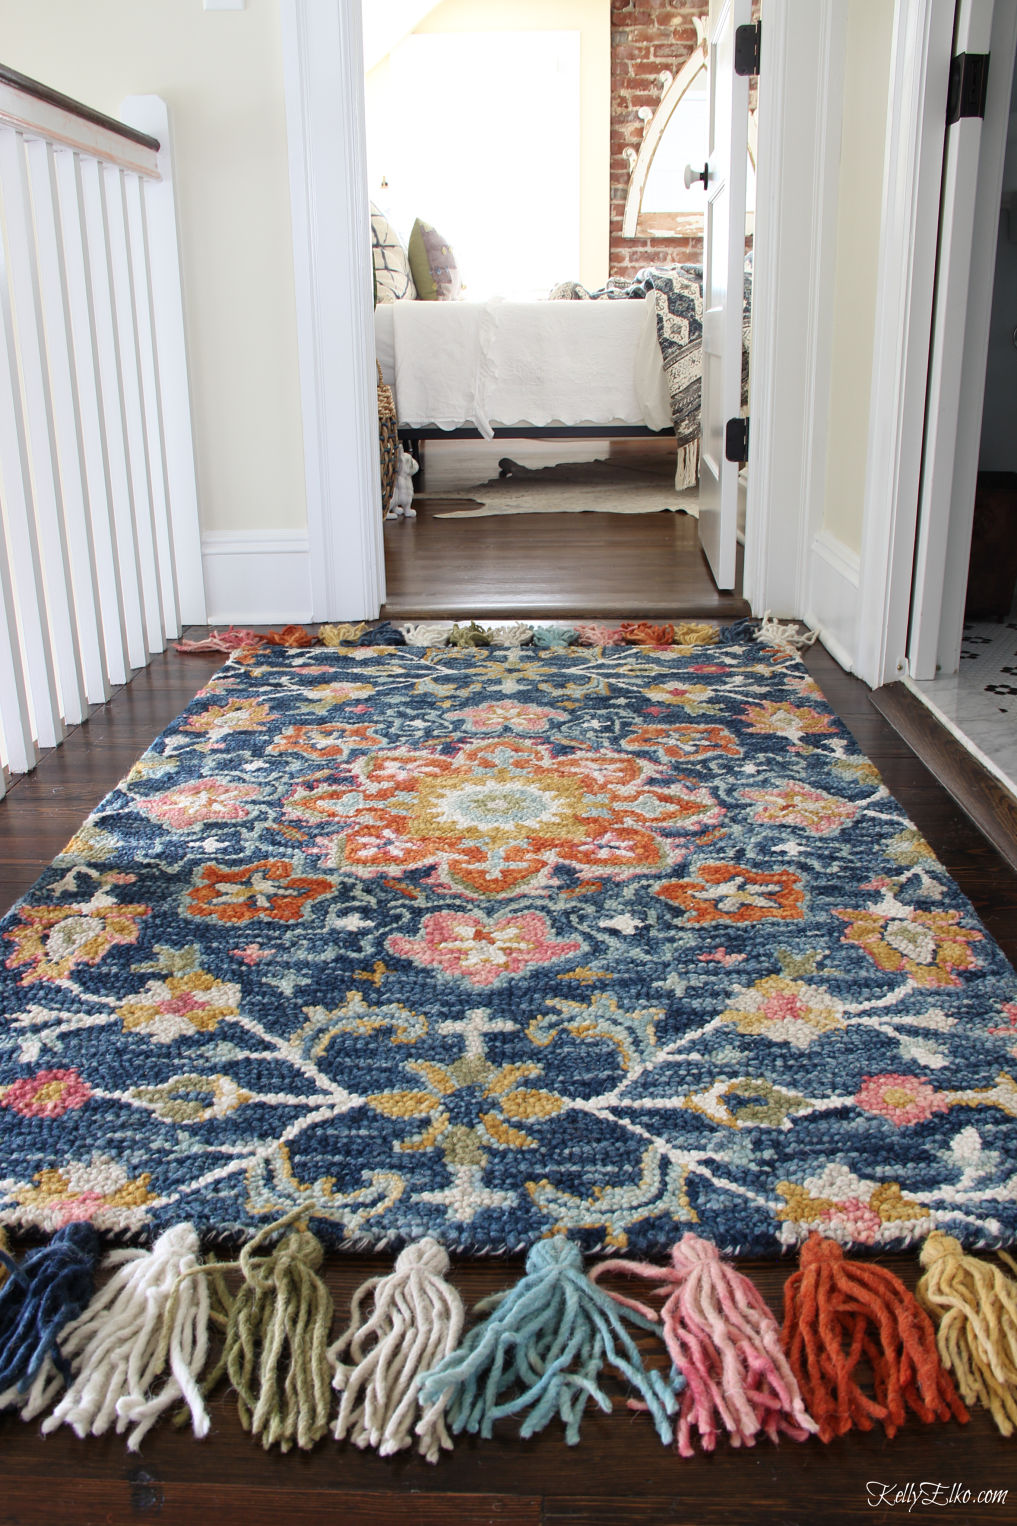 Guest Bedroom Decor - love this colorful rug with huge tassels kellyelko.com #bedroom #bedroomdecor #bedroomfurniture #bedroomdecorating #guestbedroom #rugs #loloi #bohodecor